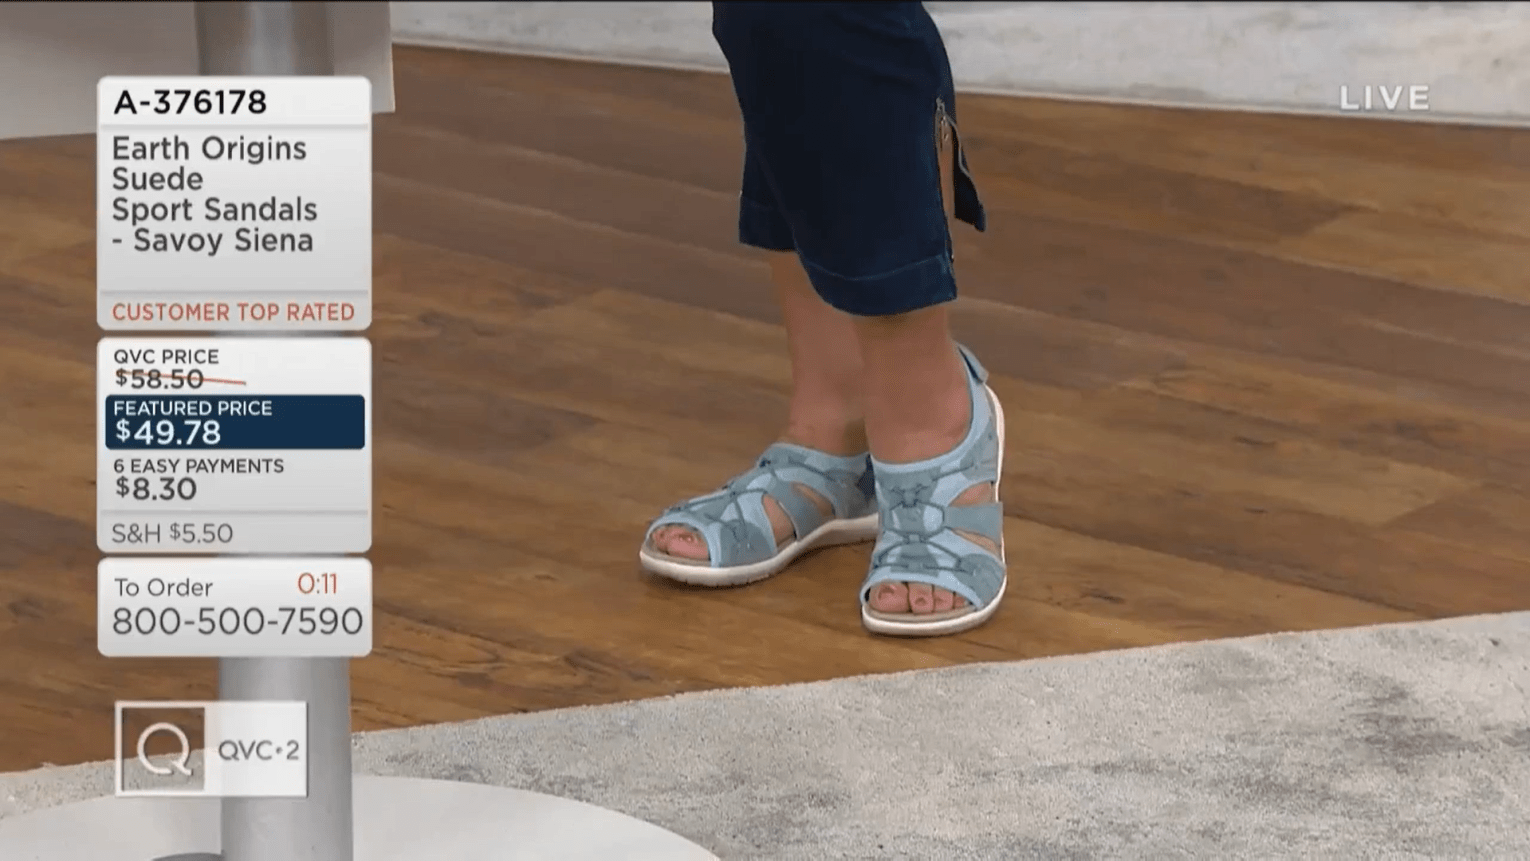 Feet of QVC show host Antonella Nester in Earth Origins sport sandals.